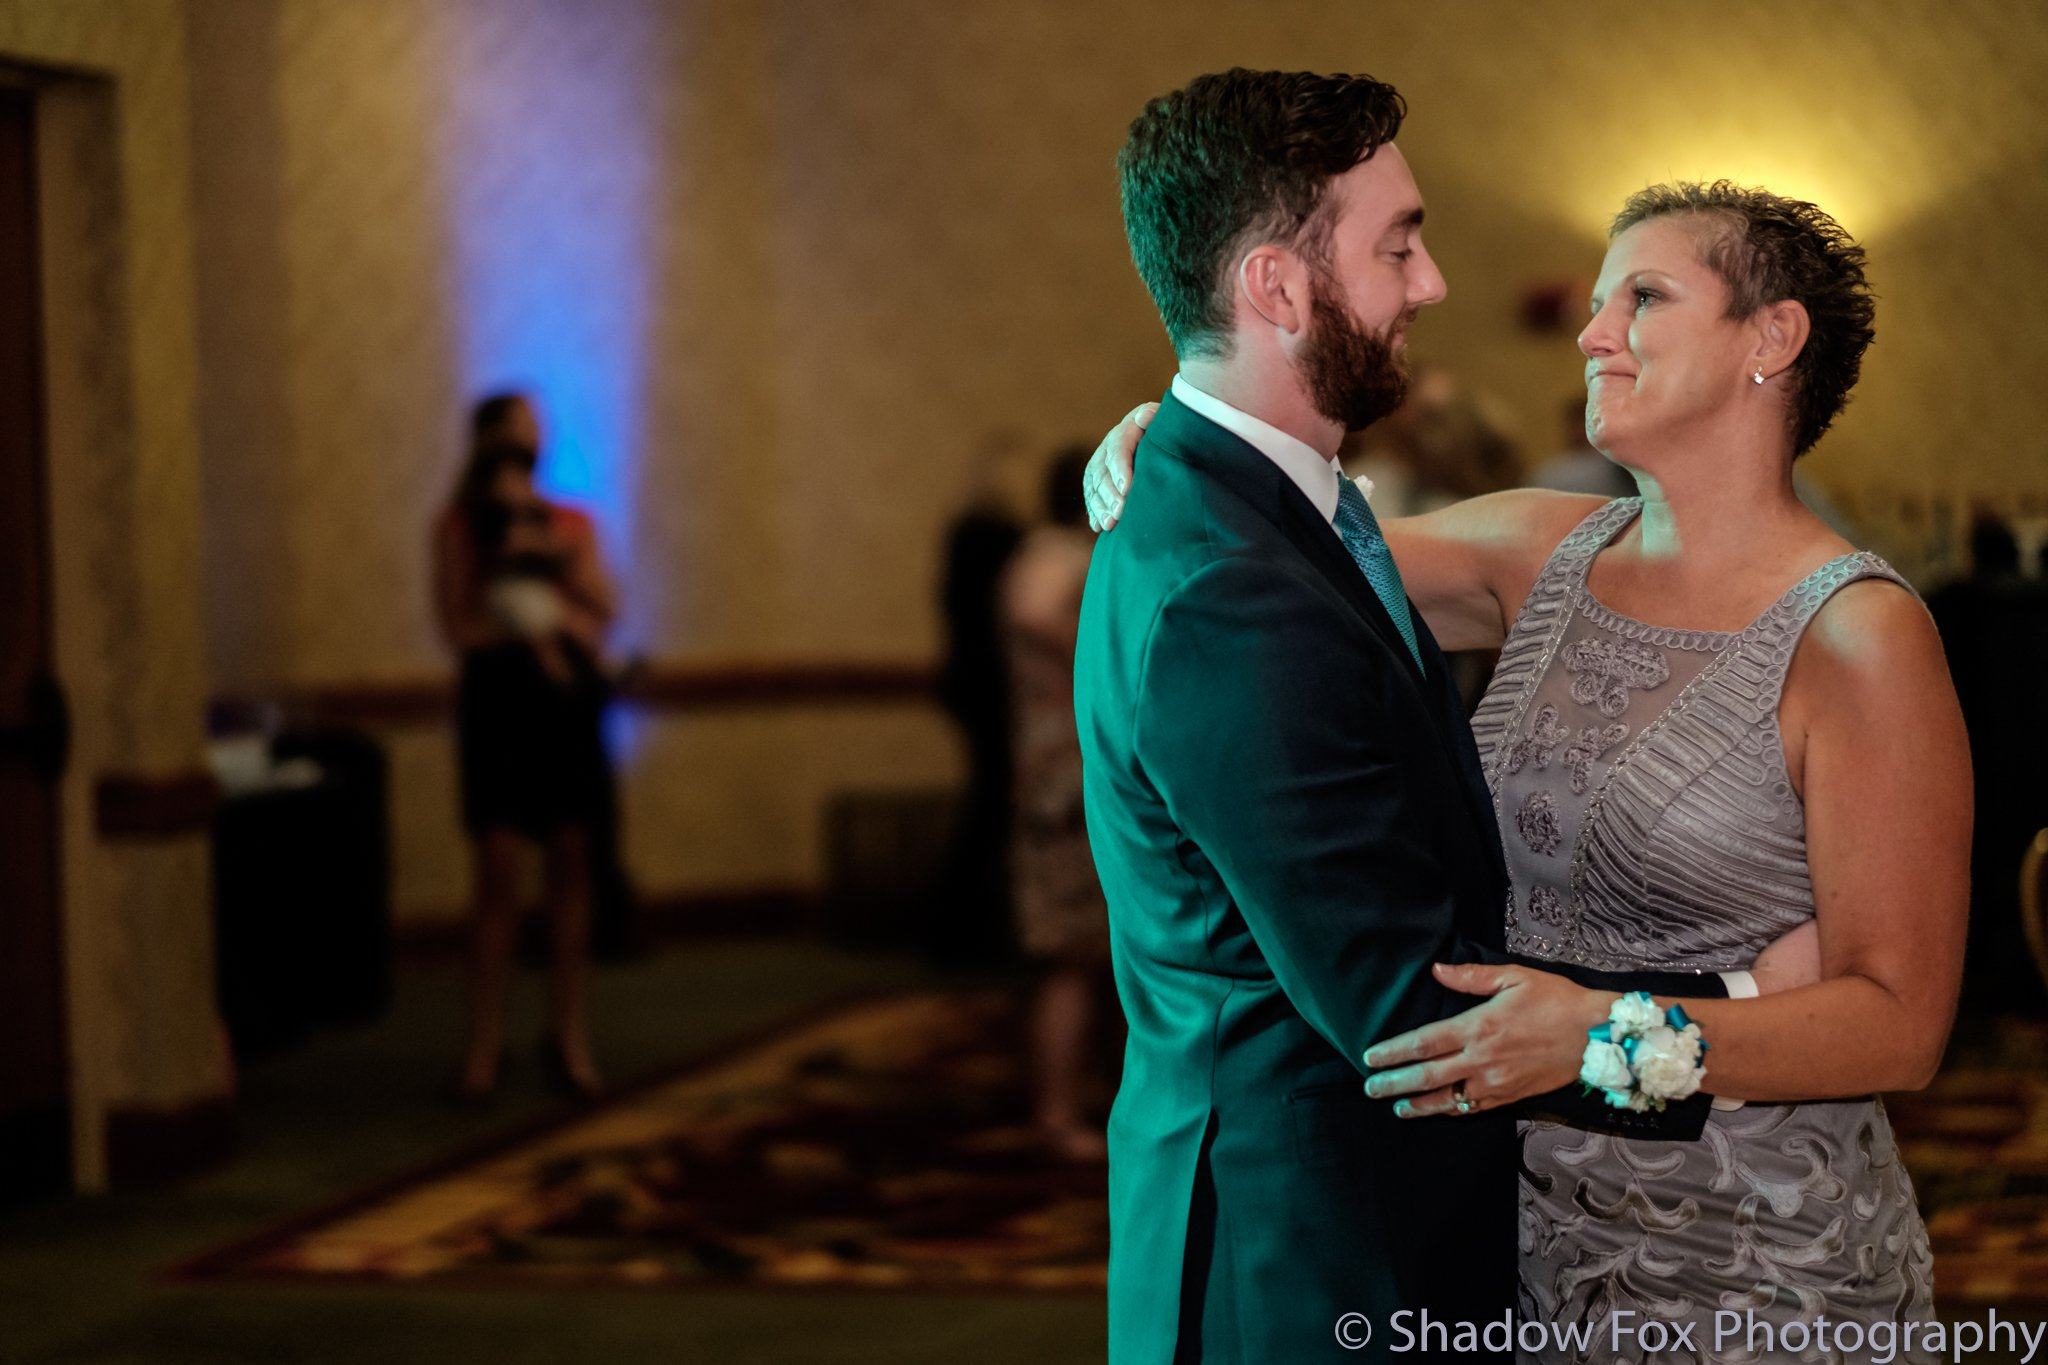 Groom and mom share a dance at the wedding reception